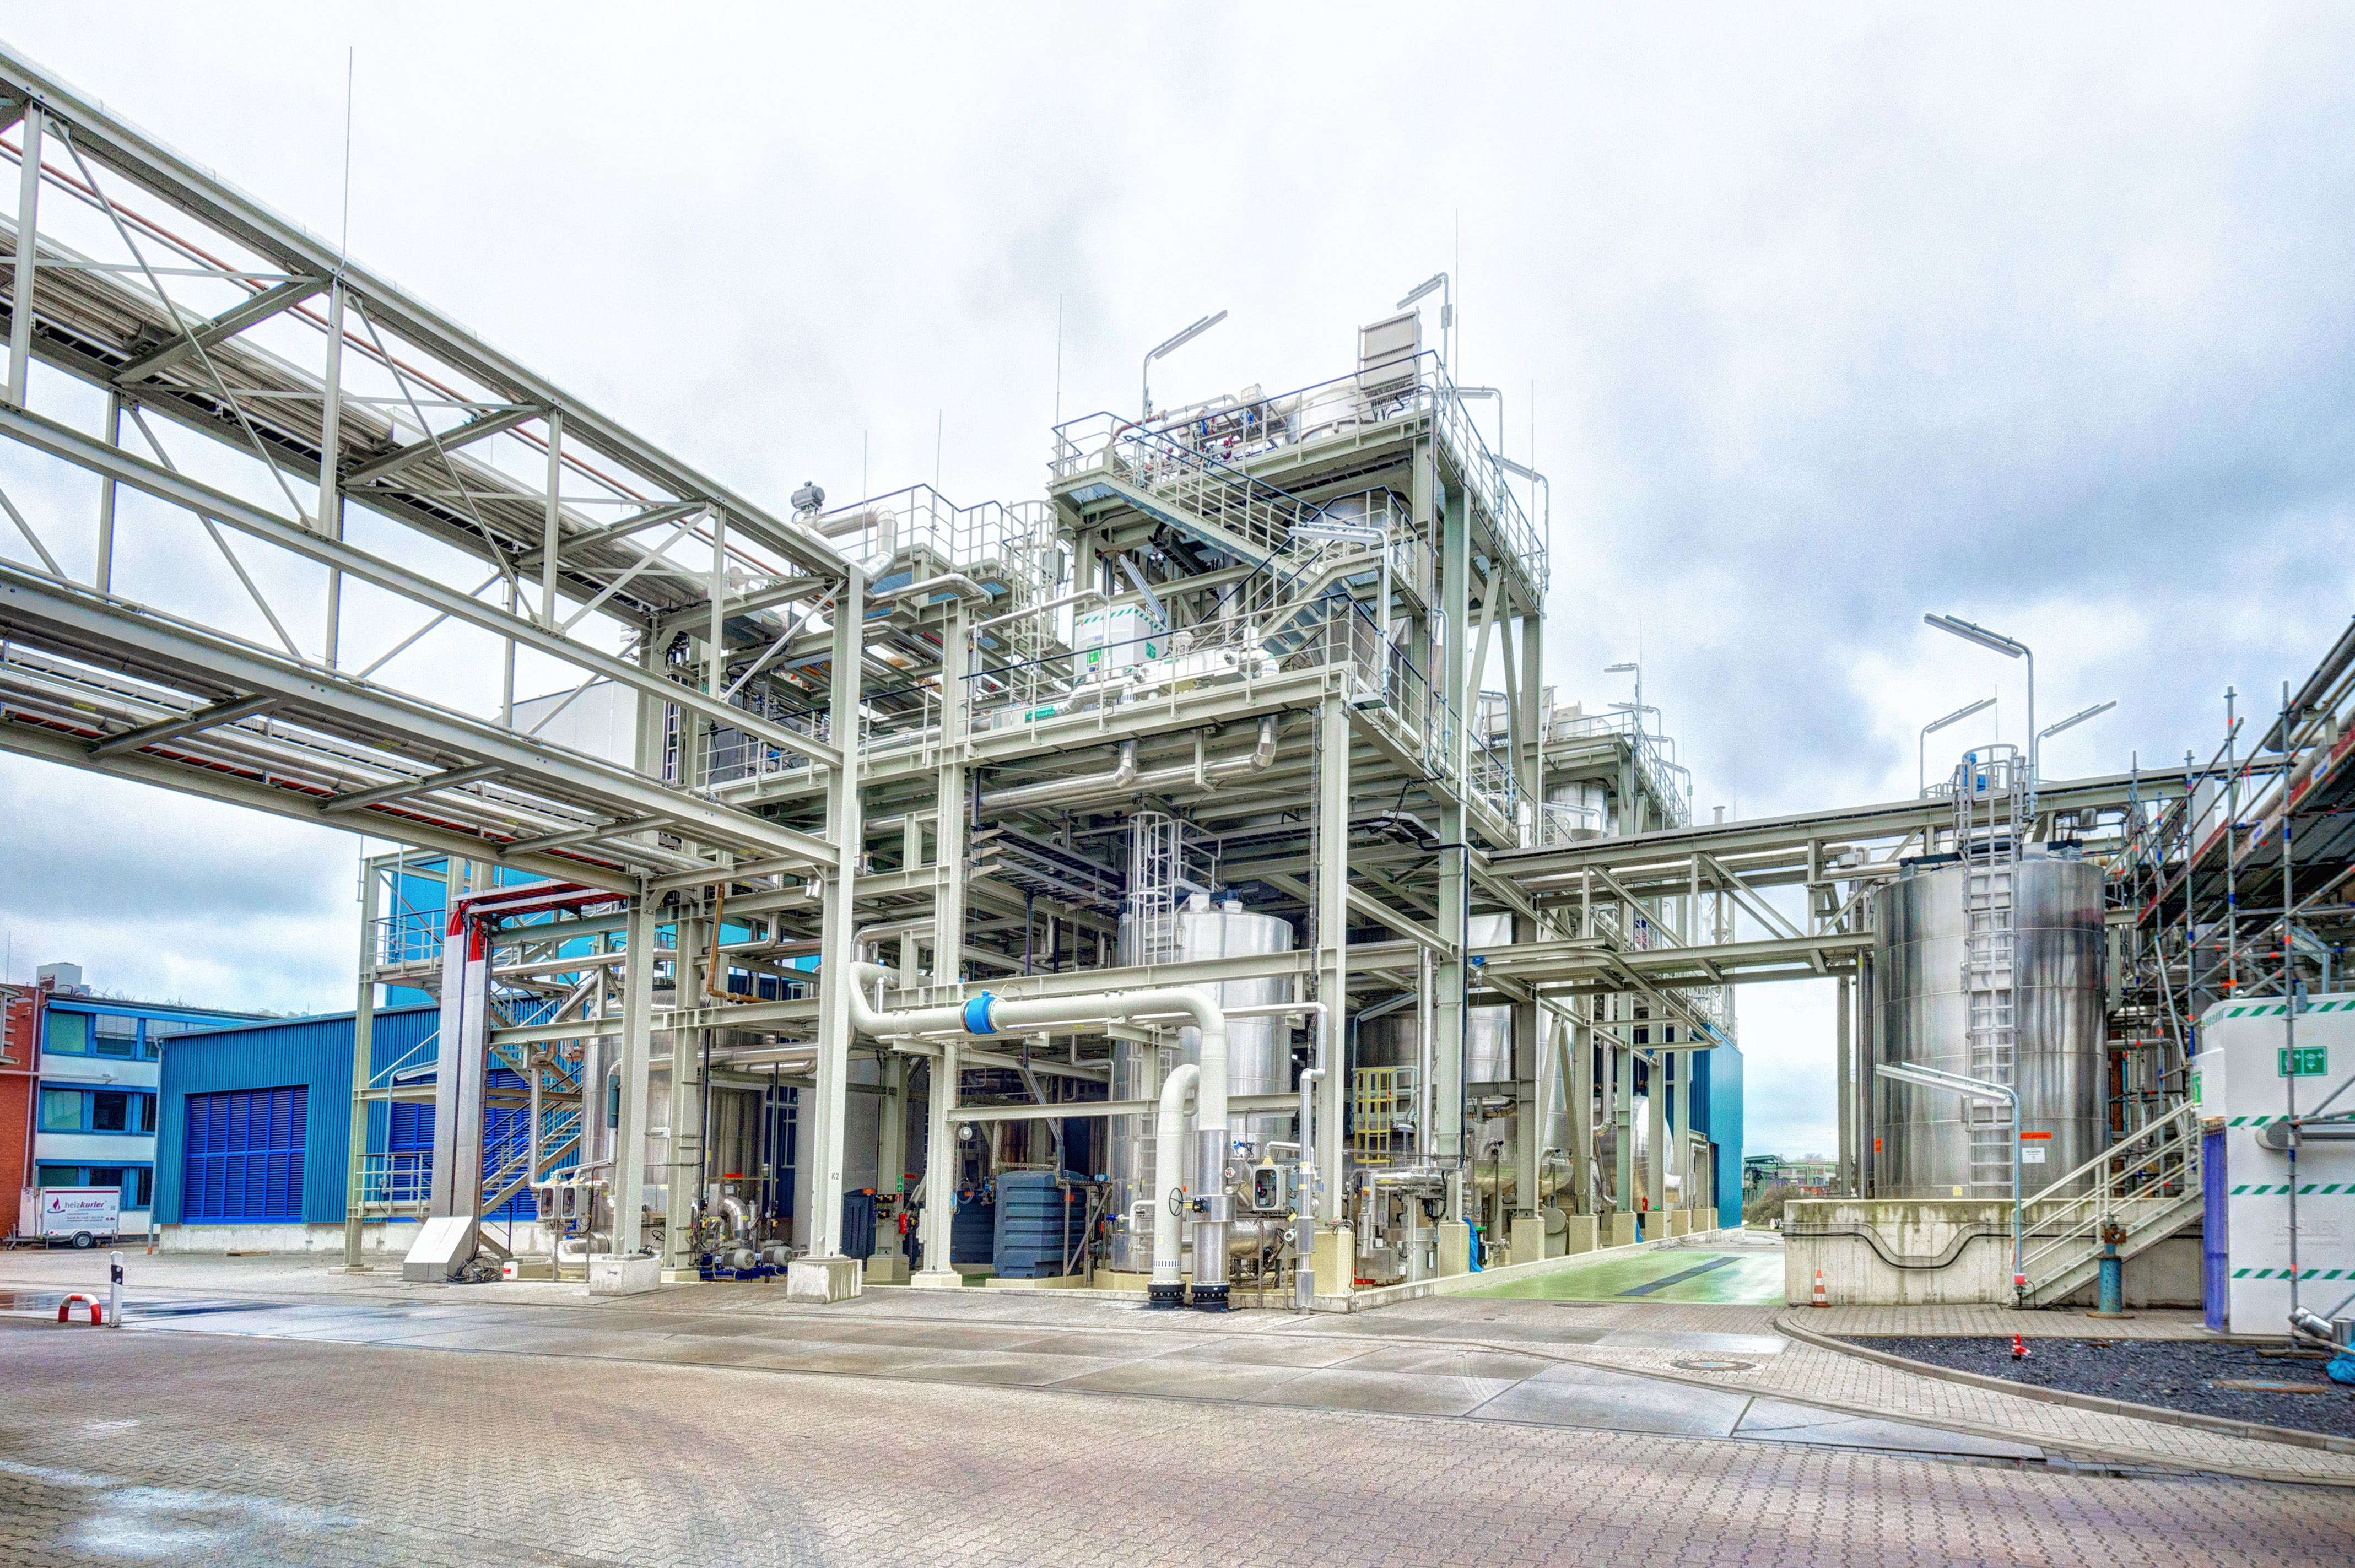 AkzoNobel and Evonik start up joint venture plant for chlorine and potassium hydroxide